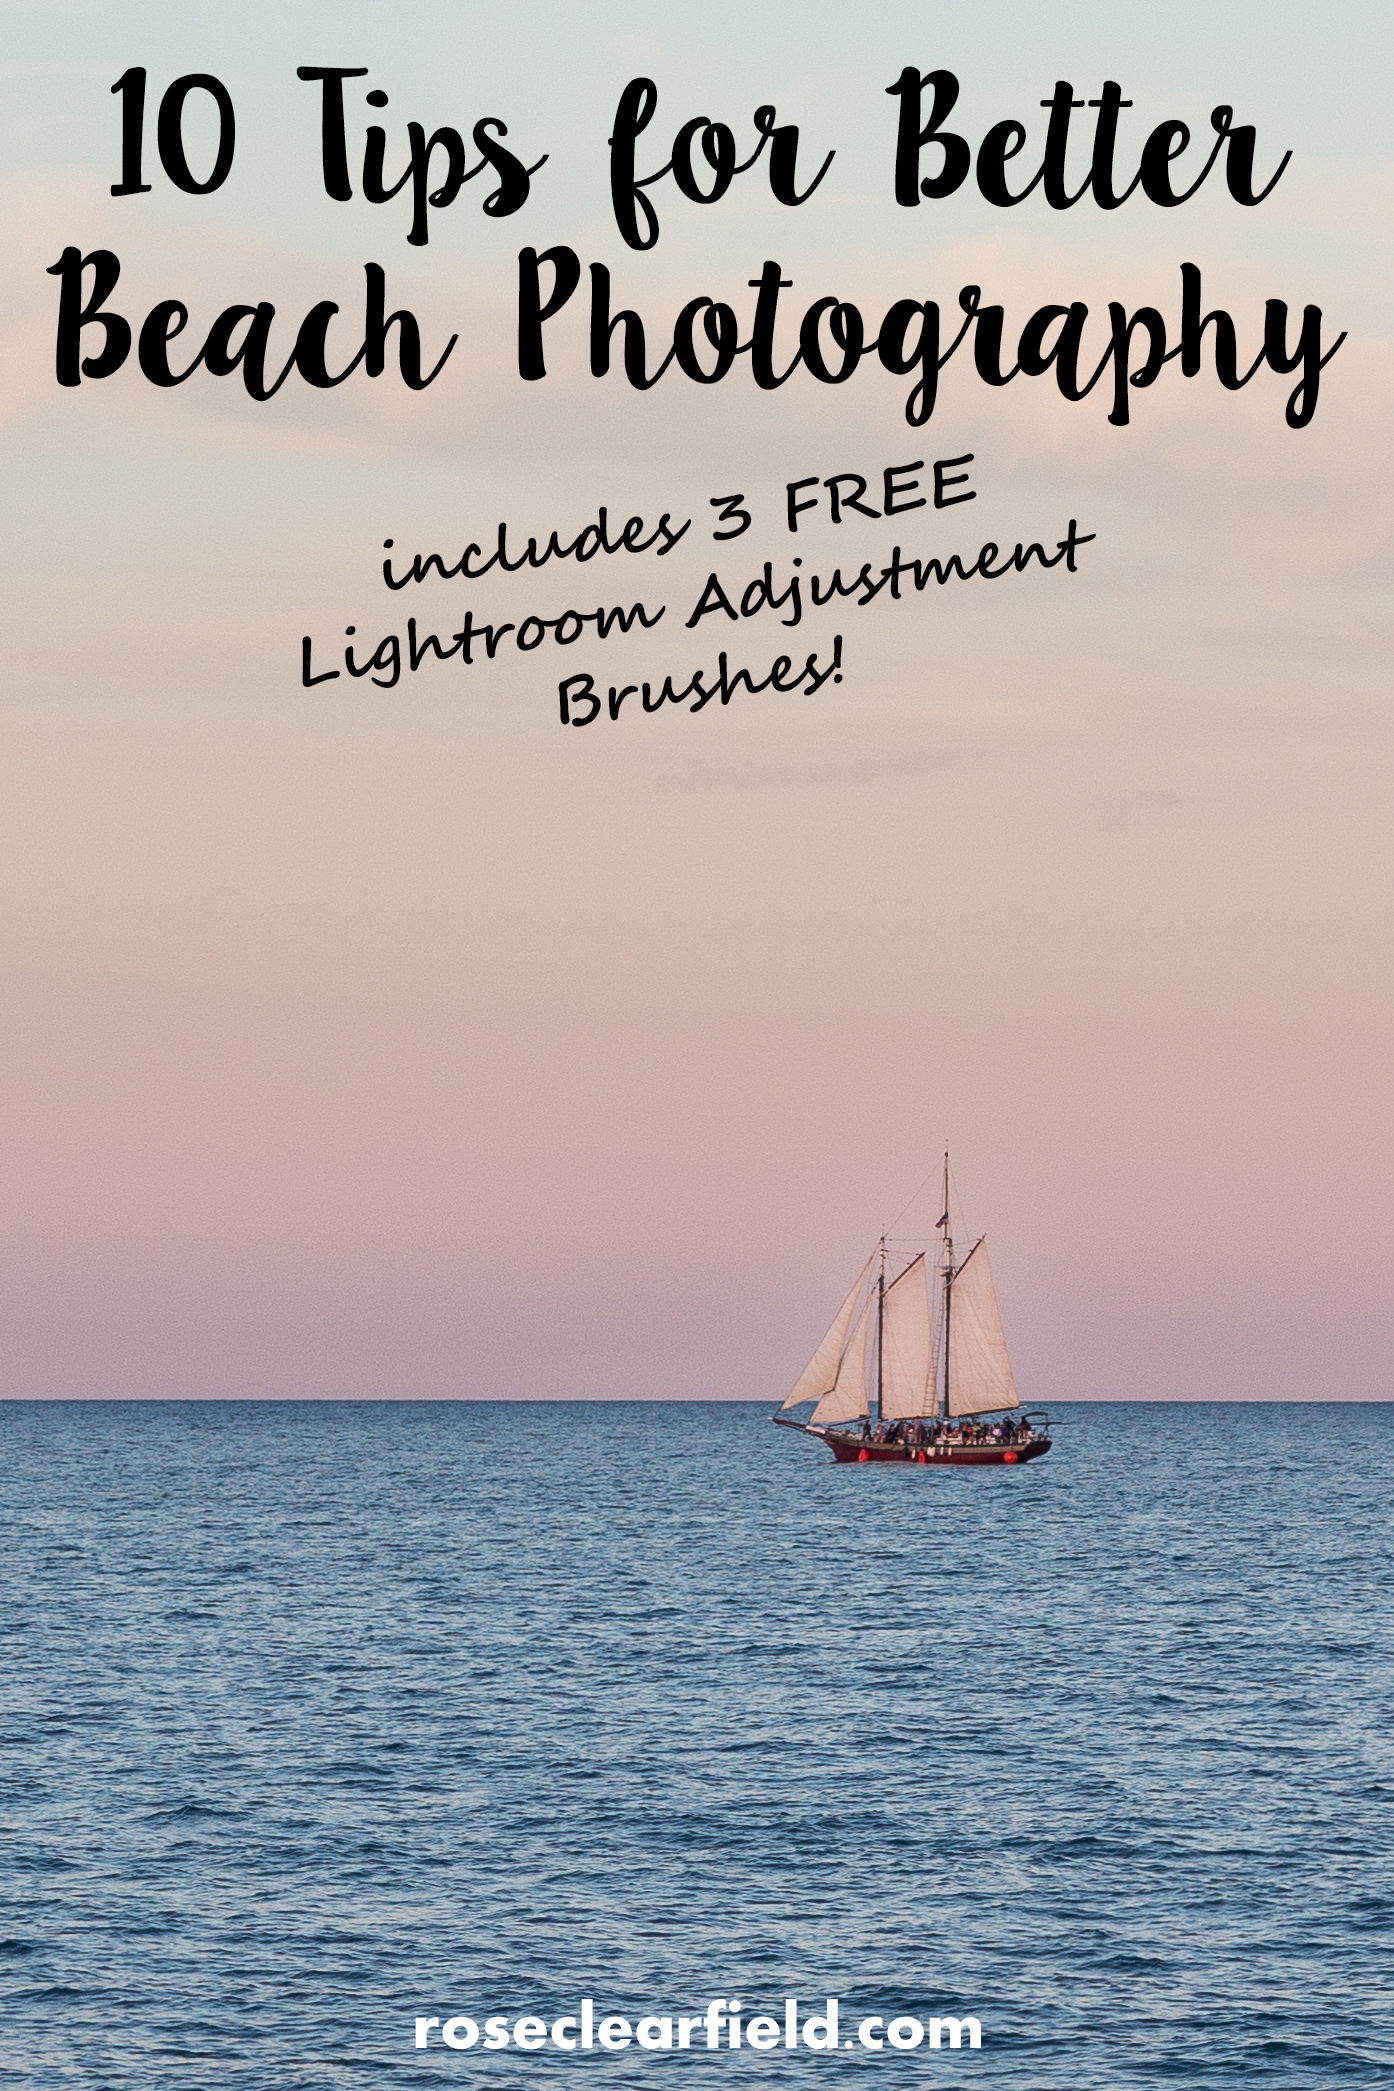 10 Tips for Better Beach Photography   http://www.roseclearfield.com